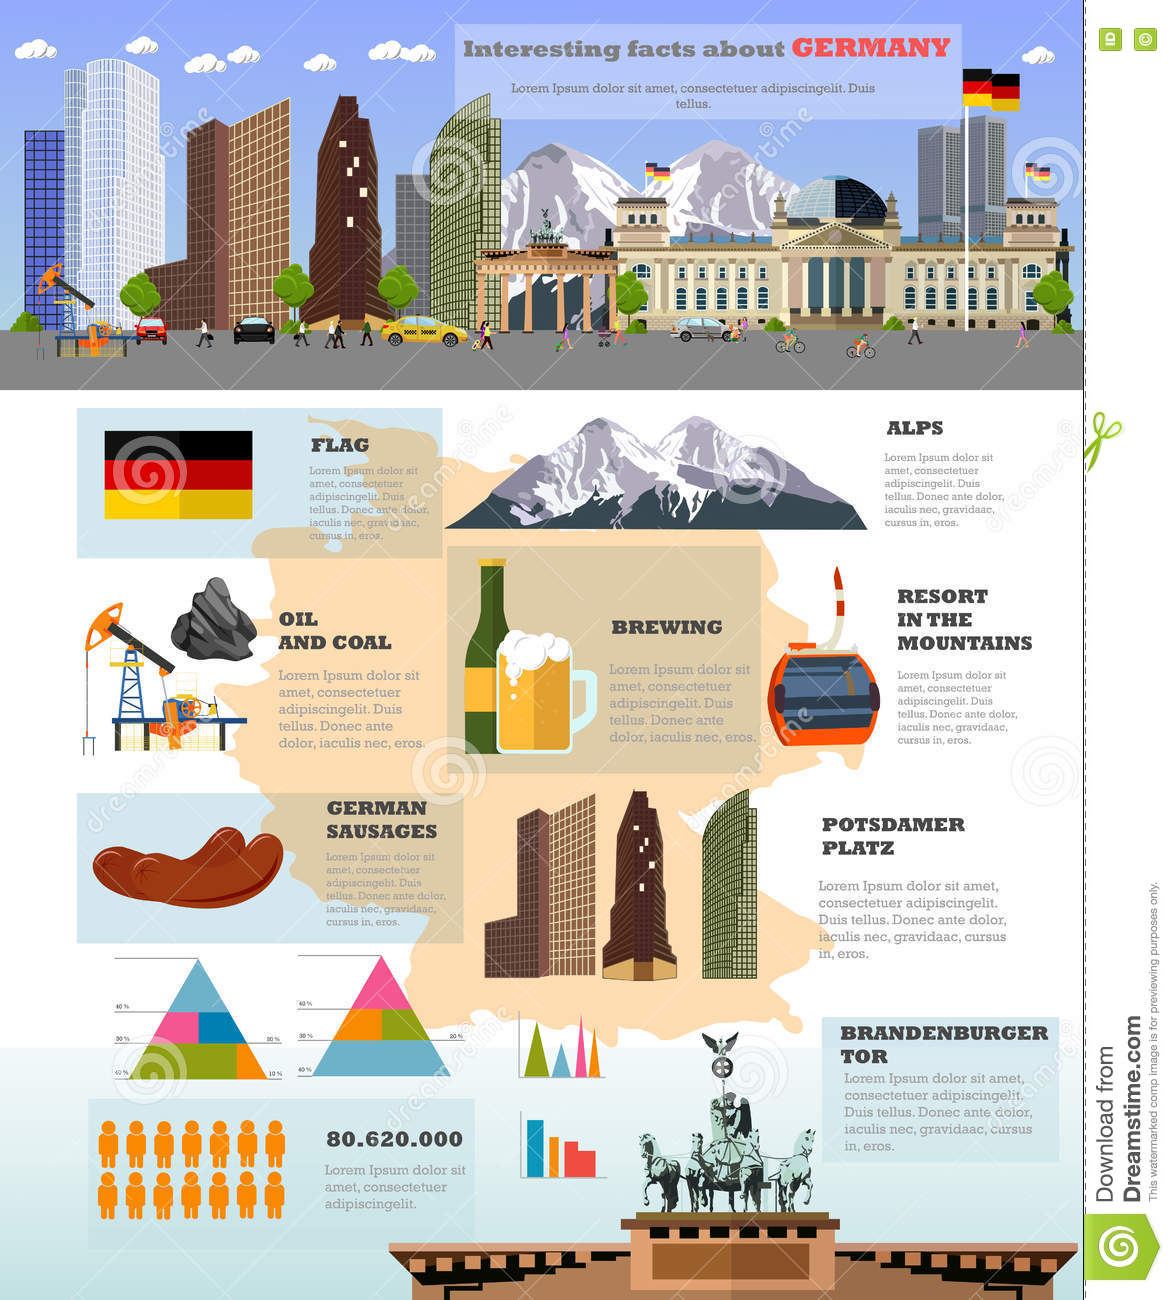 I Want To Visit Germany In German: Travel To Germany Concept Vector Illustration. German